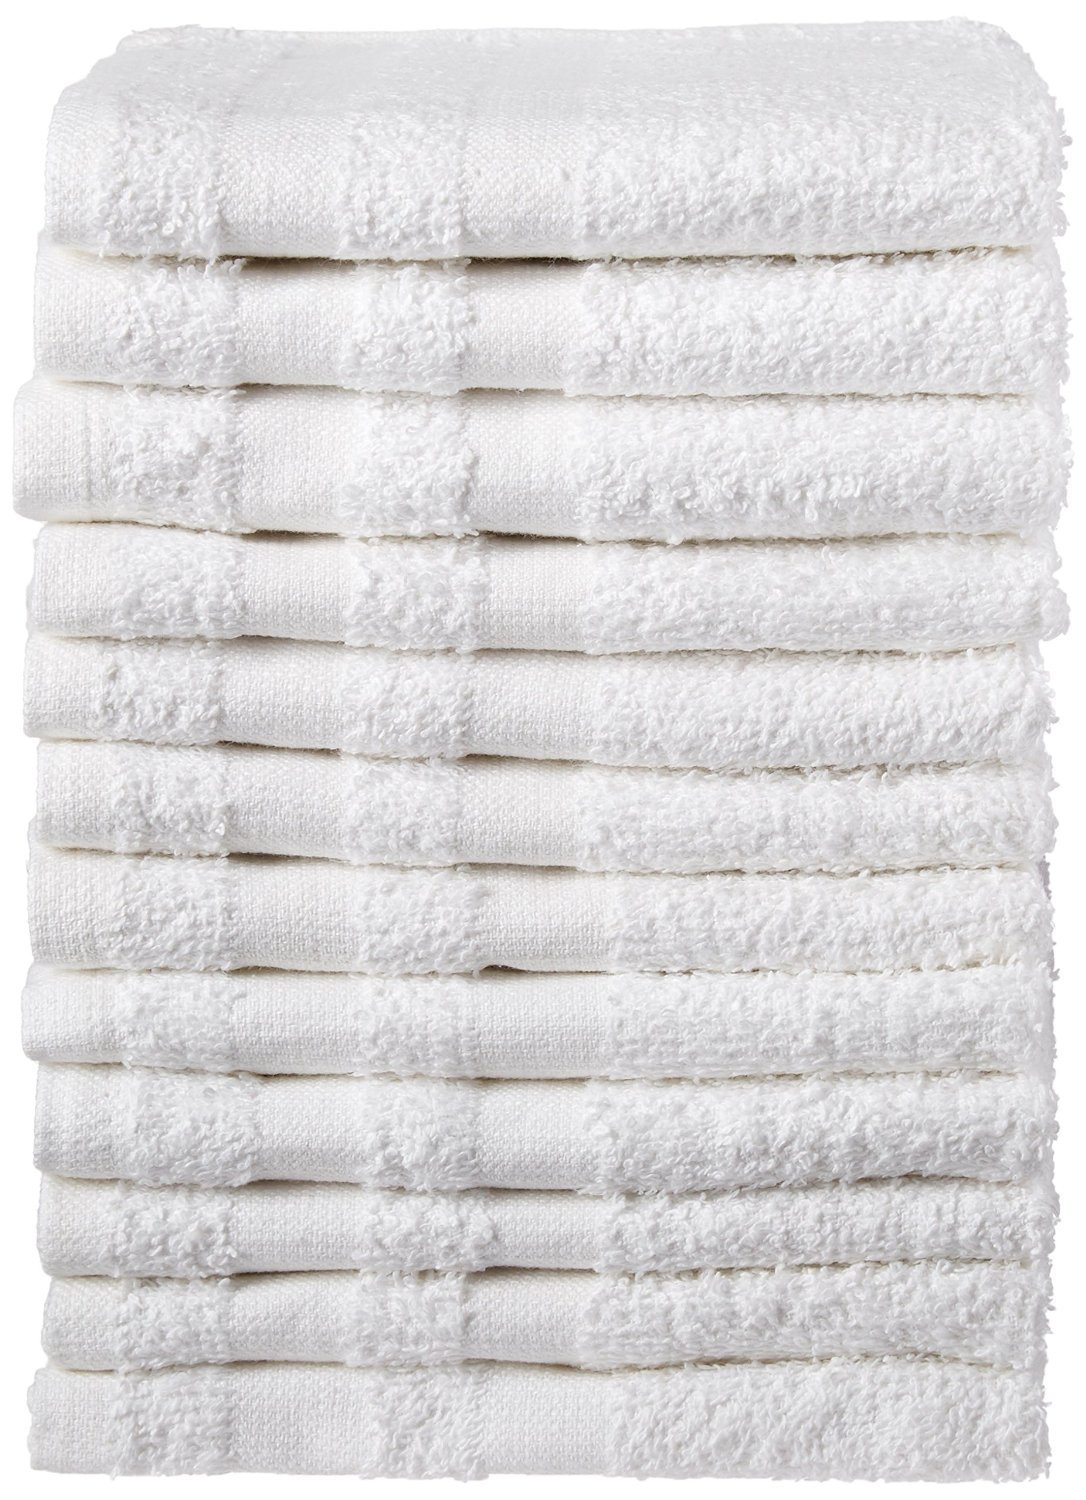 Weaved Collection White Hand Towels, Basic Cotton 100% Cotton 12 Pack,15''x 25'' by WC Weaved Collection (Image #1)